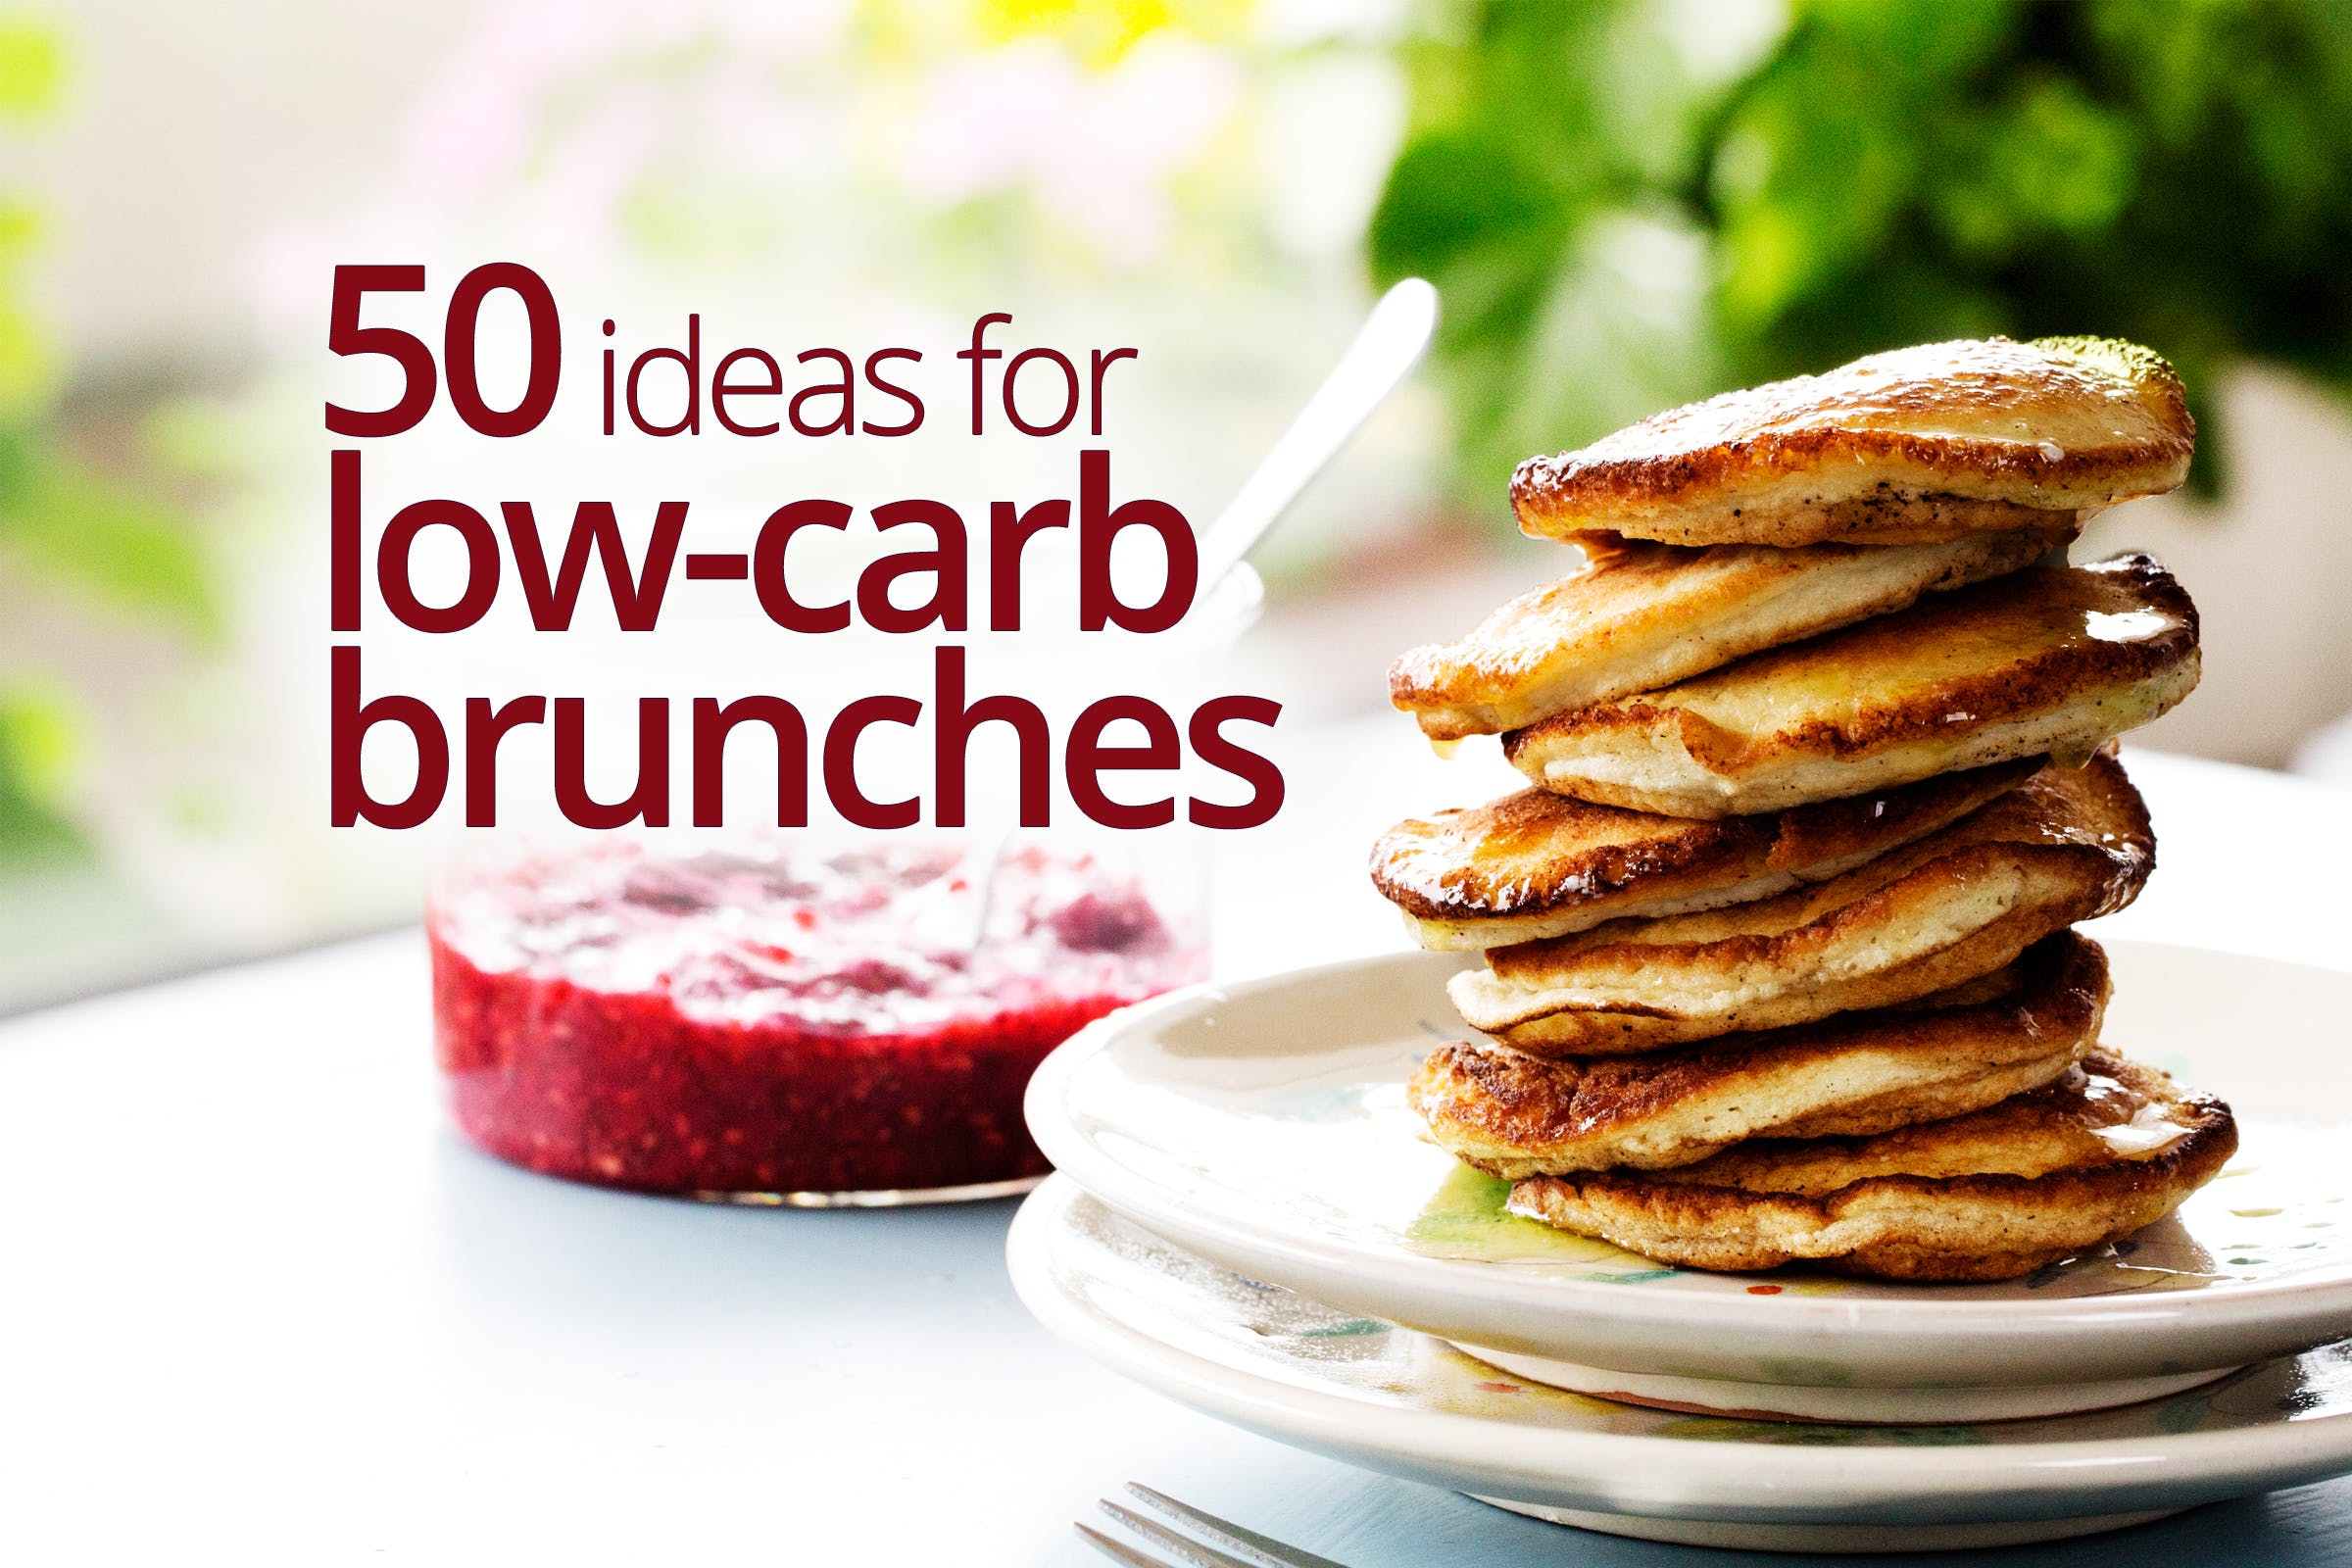 50LCBrunches